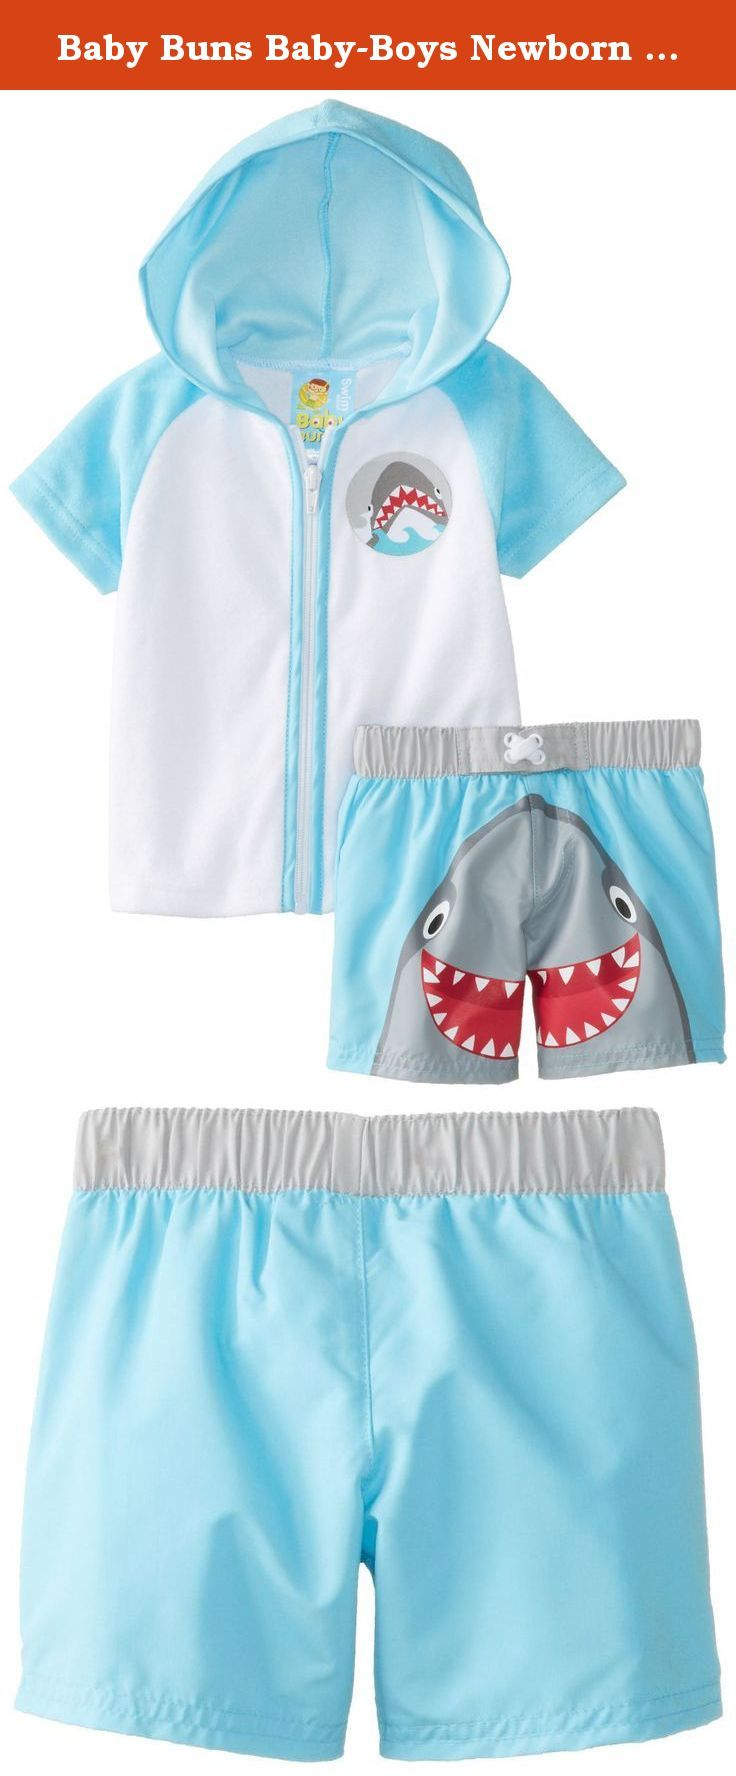 Baby Buns Baby-Boys Newborn Cover Up and Swimtrunk Happy Shark, Blue, 3/6 Months. French terry cover up with printed swim trunk.